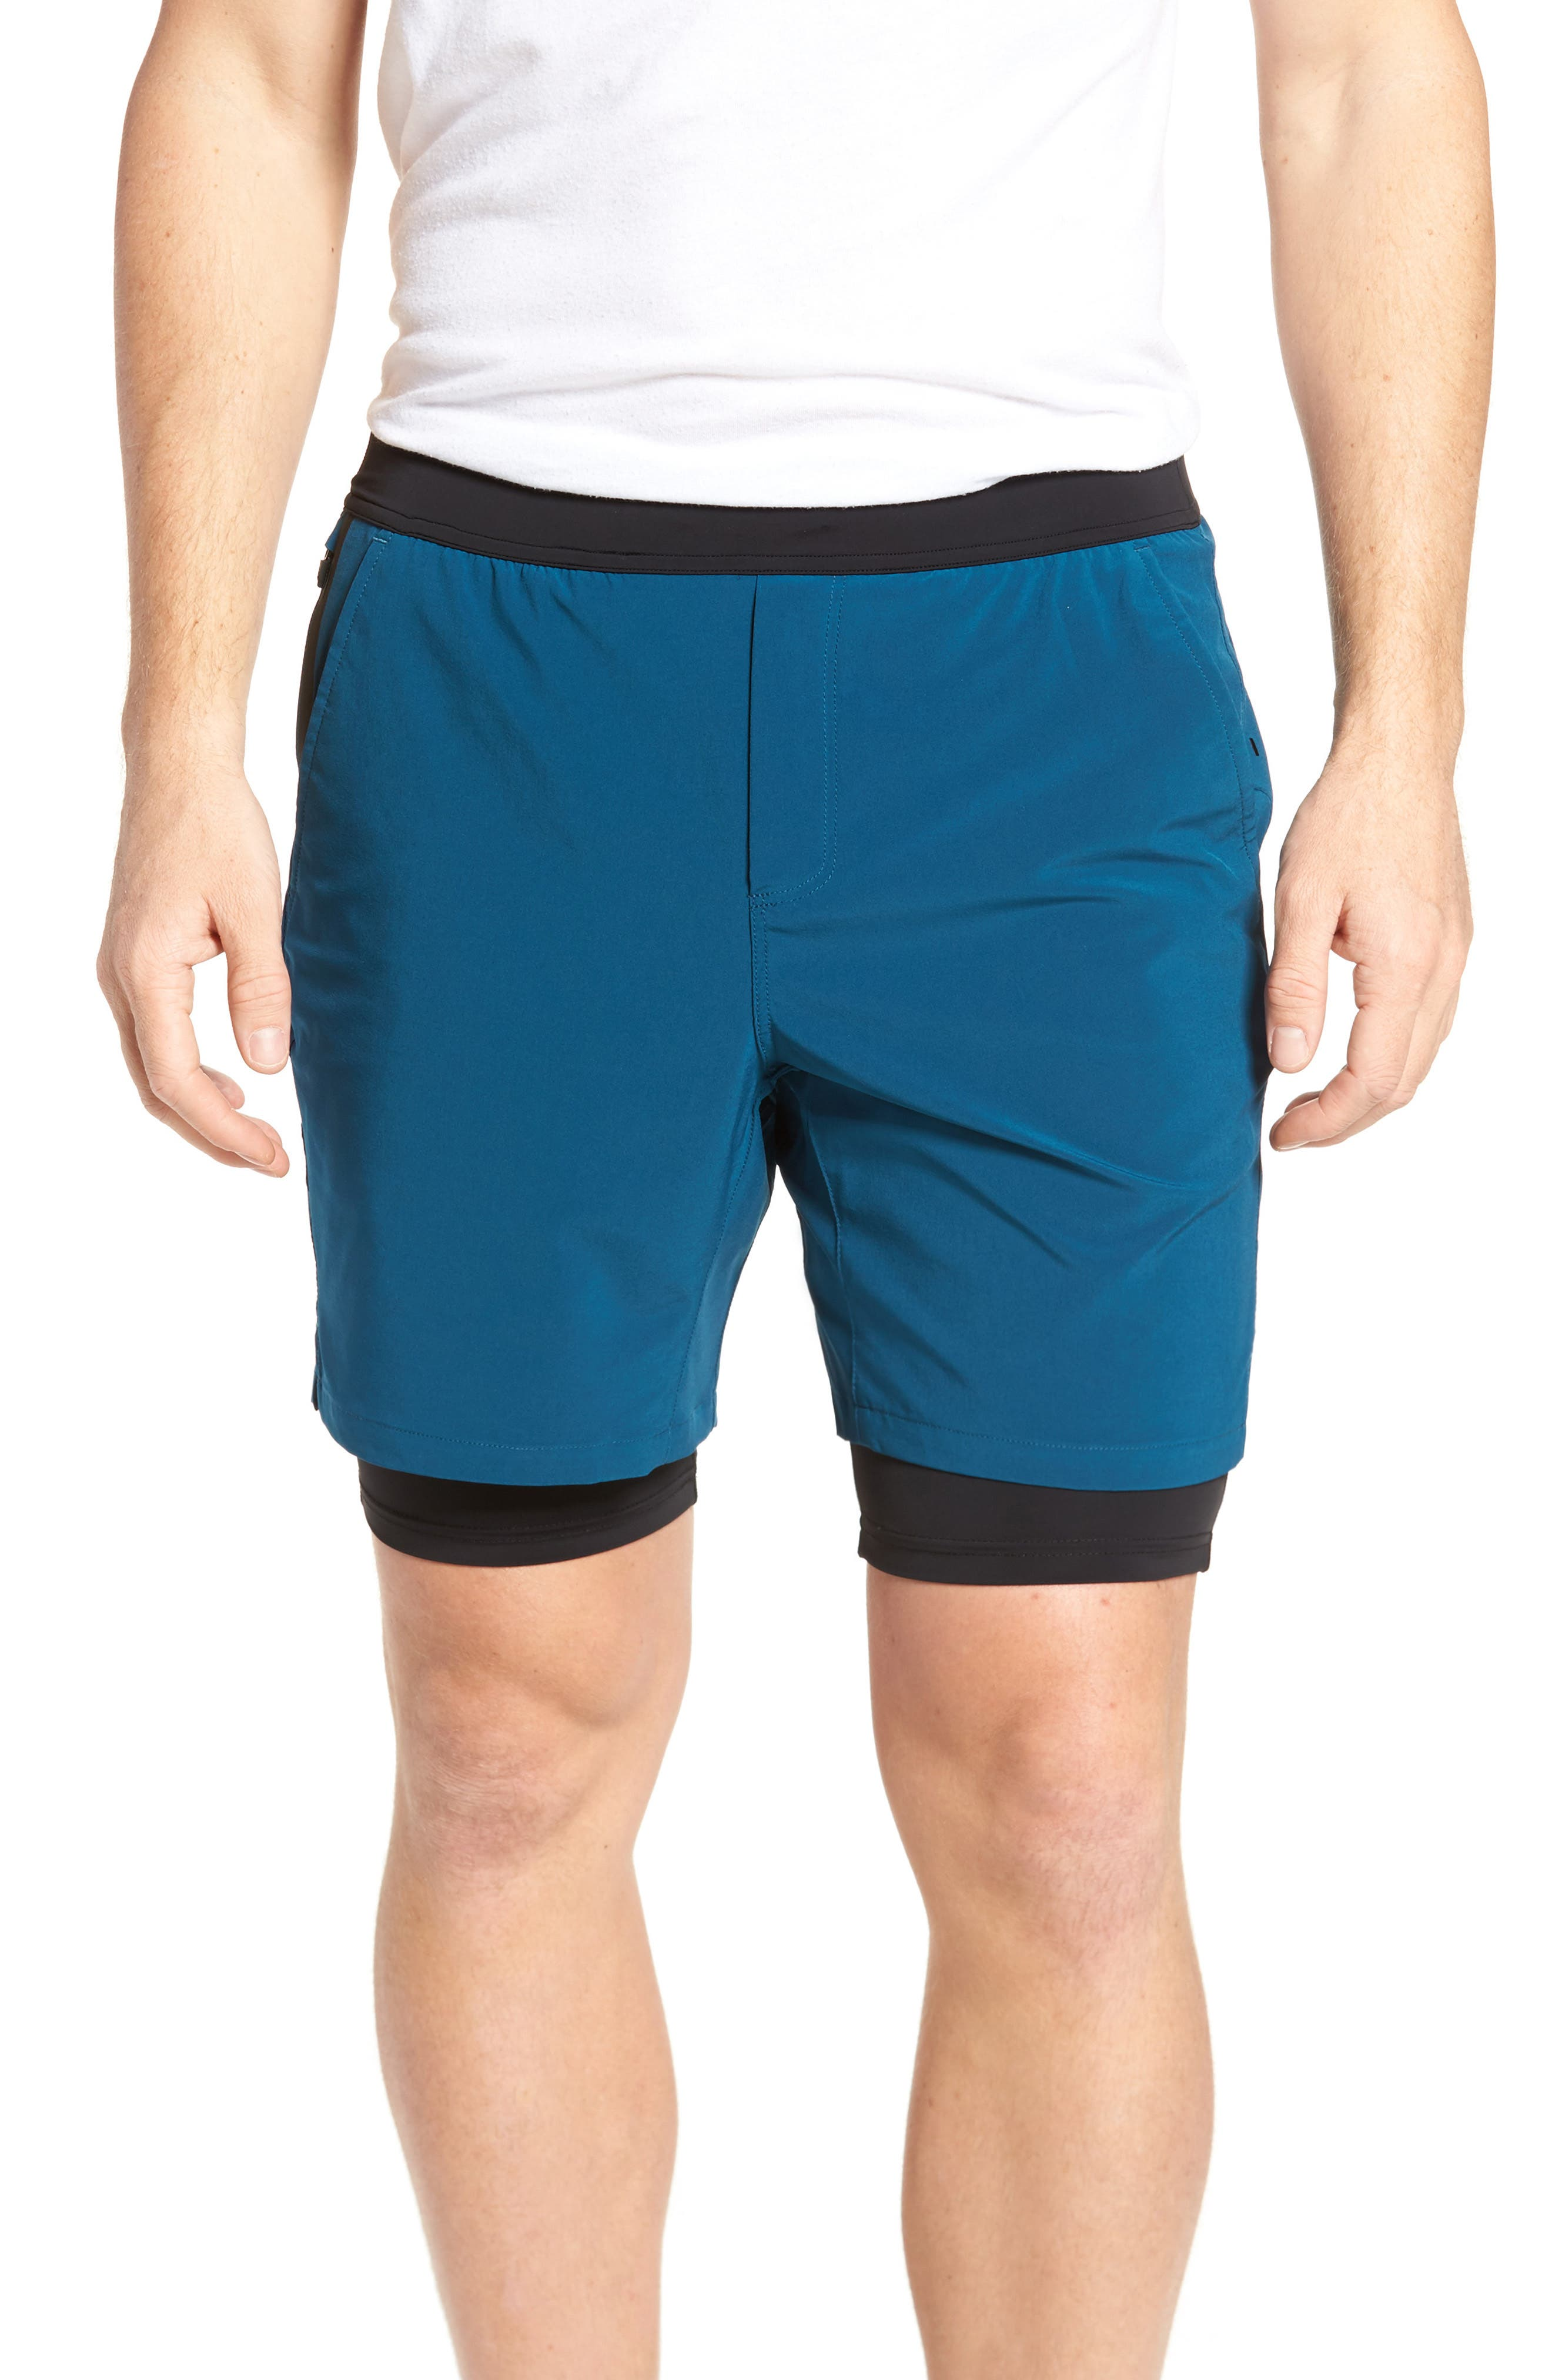 Interval Athletic Shorts,                         Main,                         color, Dark Teal